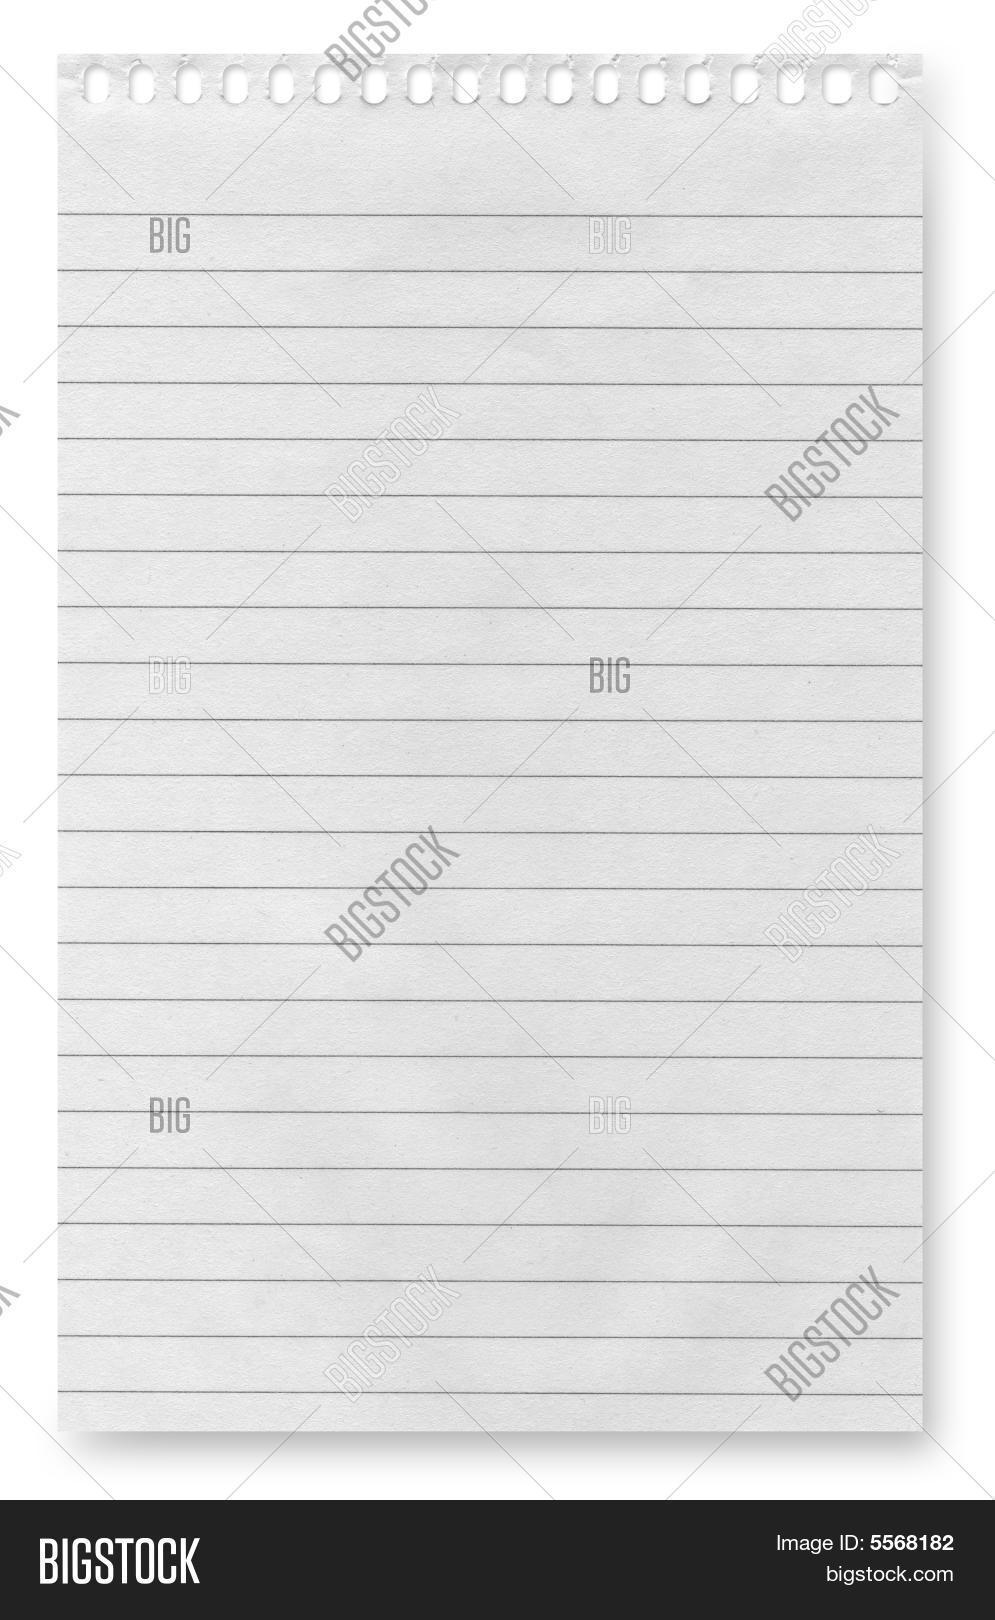 background,blank,business,card,copy,design,document,empty,frame,image,isolated,letter,message,note,notebook,note paper,object,office,page,paper,paper background,pattern,picture,reminder,sheet,space,spiral,supply,textured,view,white,writing